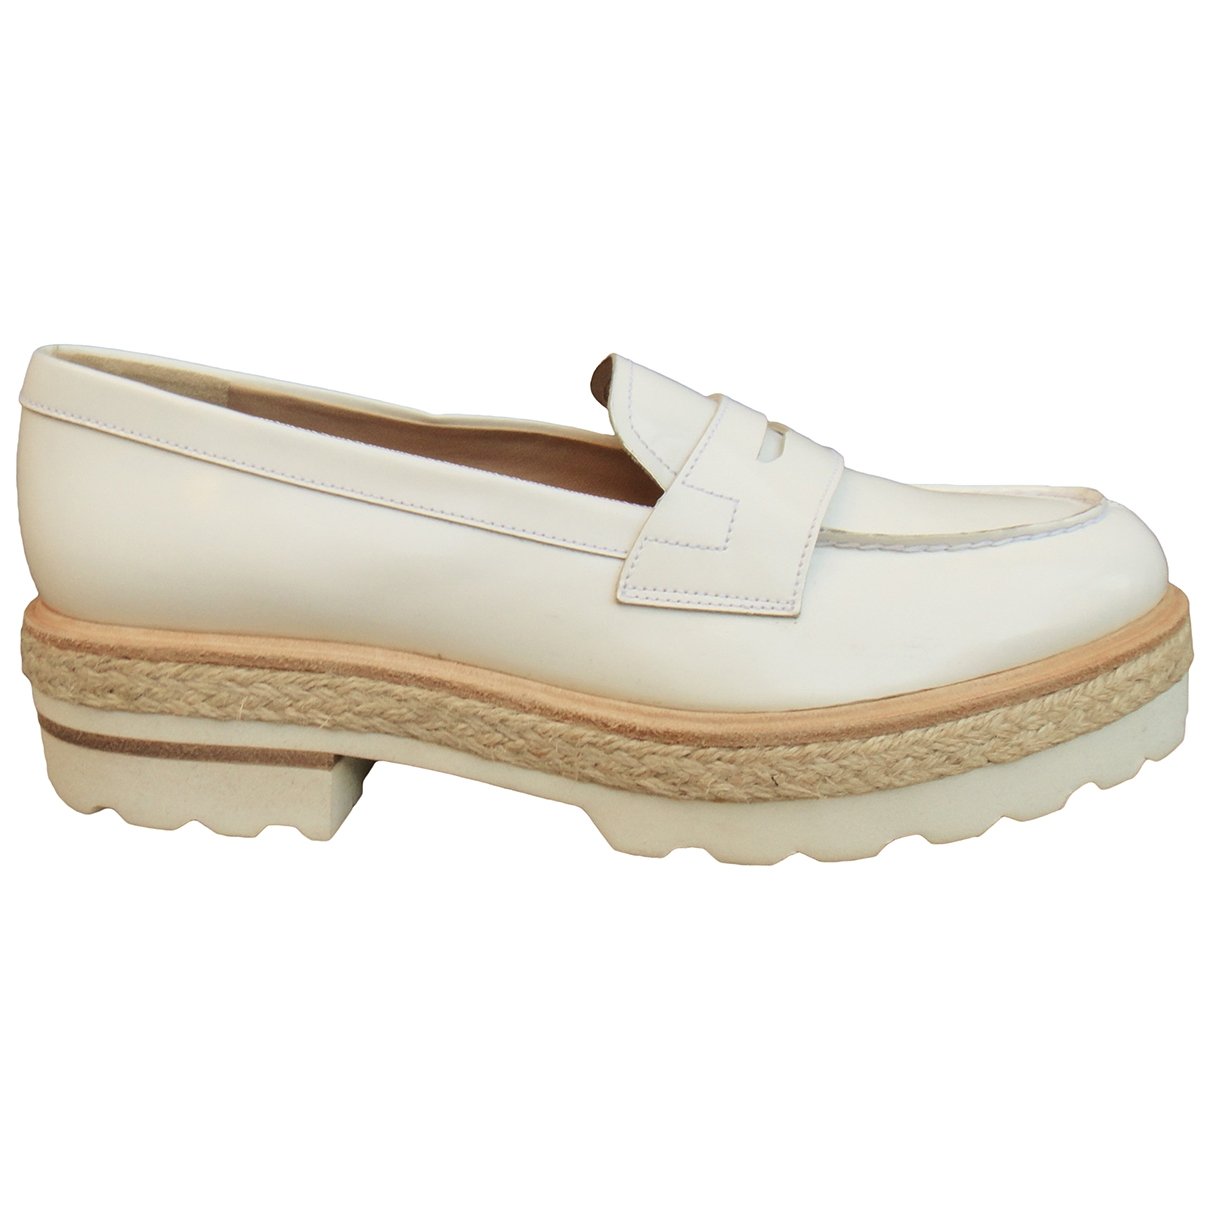 Fratelli Rossetti \N White Patent leather Flats for Women 38 IT